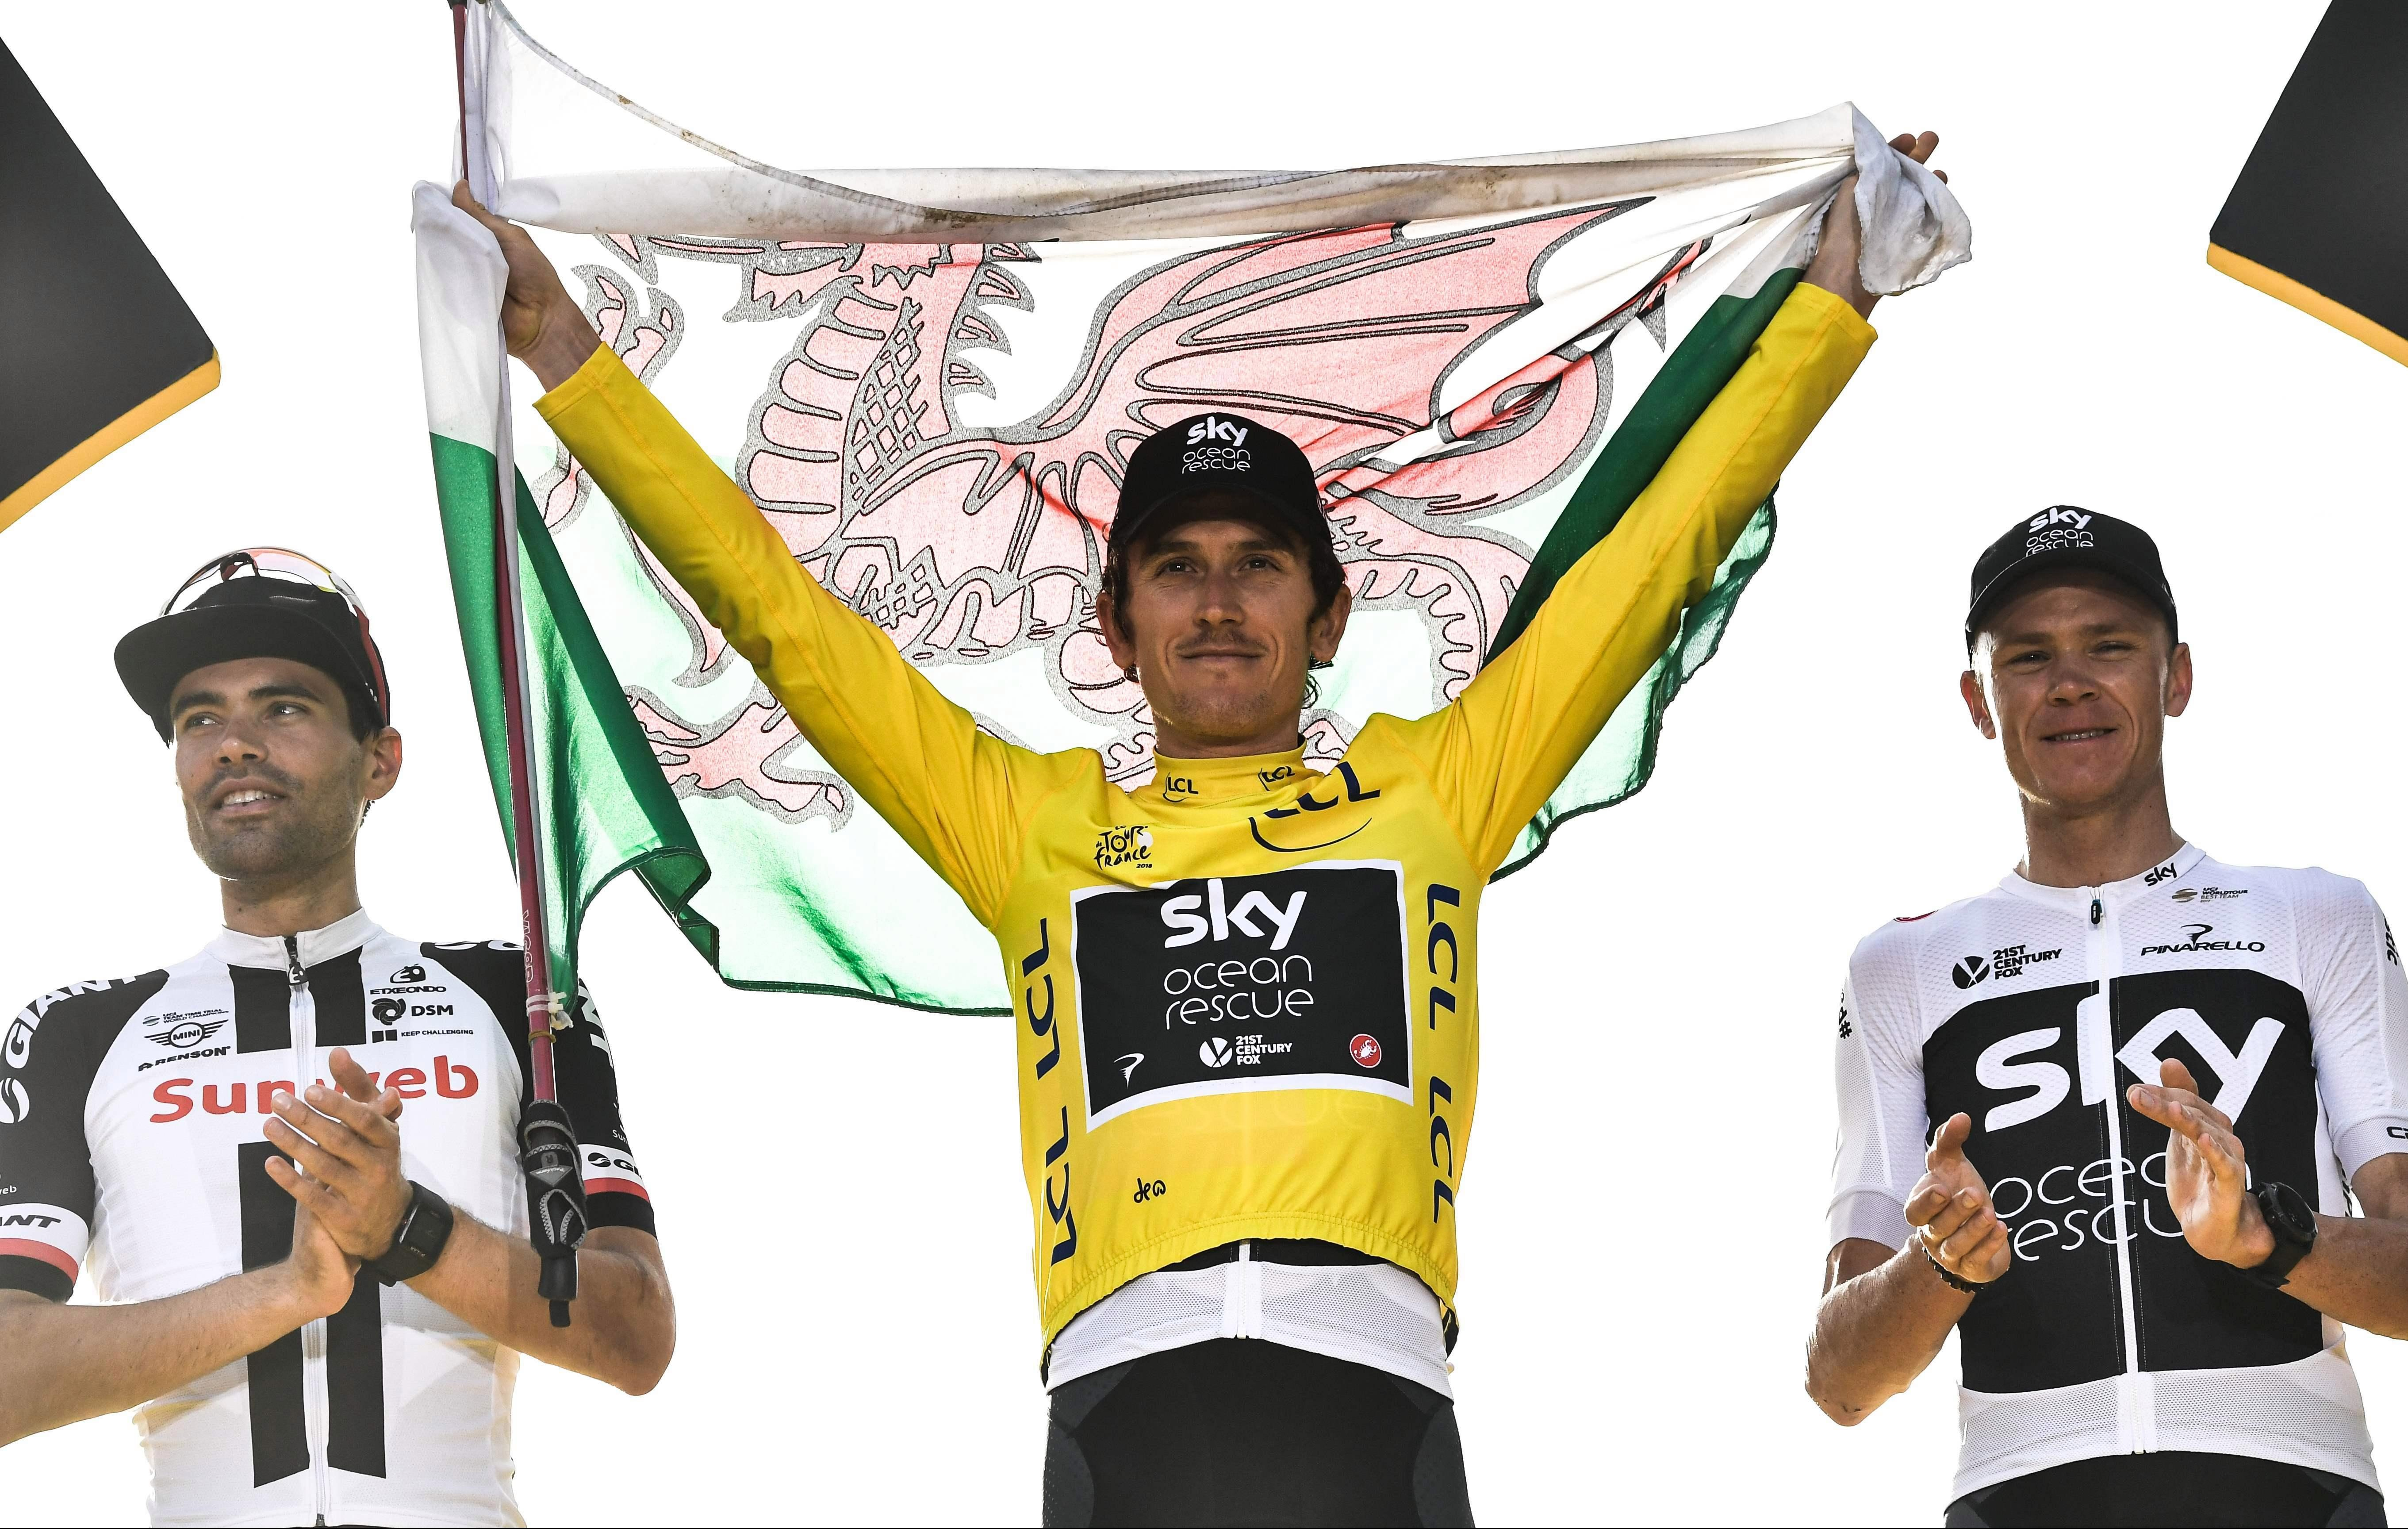 Geraint Thomas triumphed in the Tour de France ahead of Dutchman Tom Dumoulin and third-placed Chris Froome